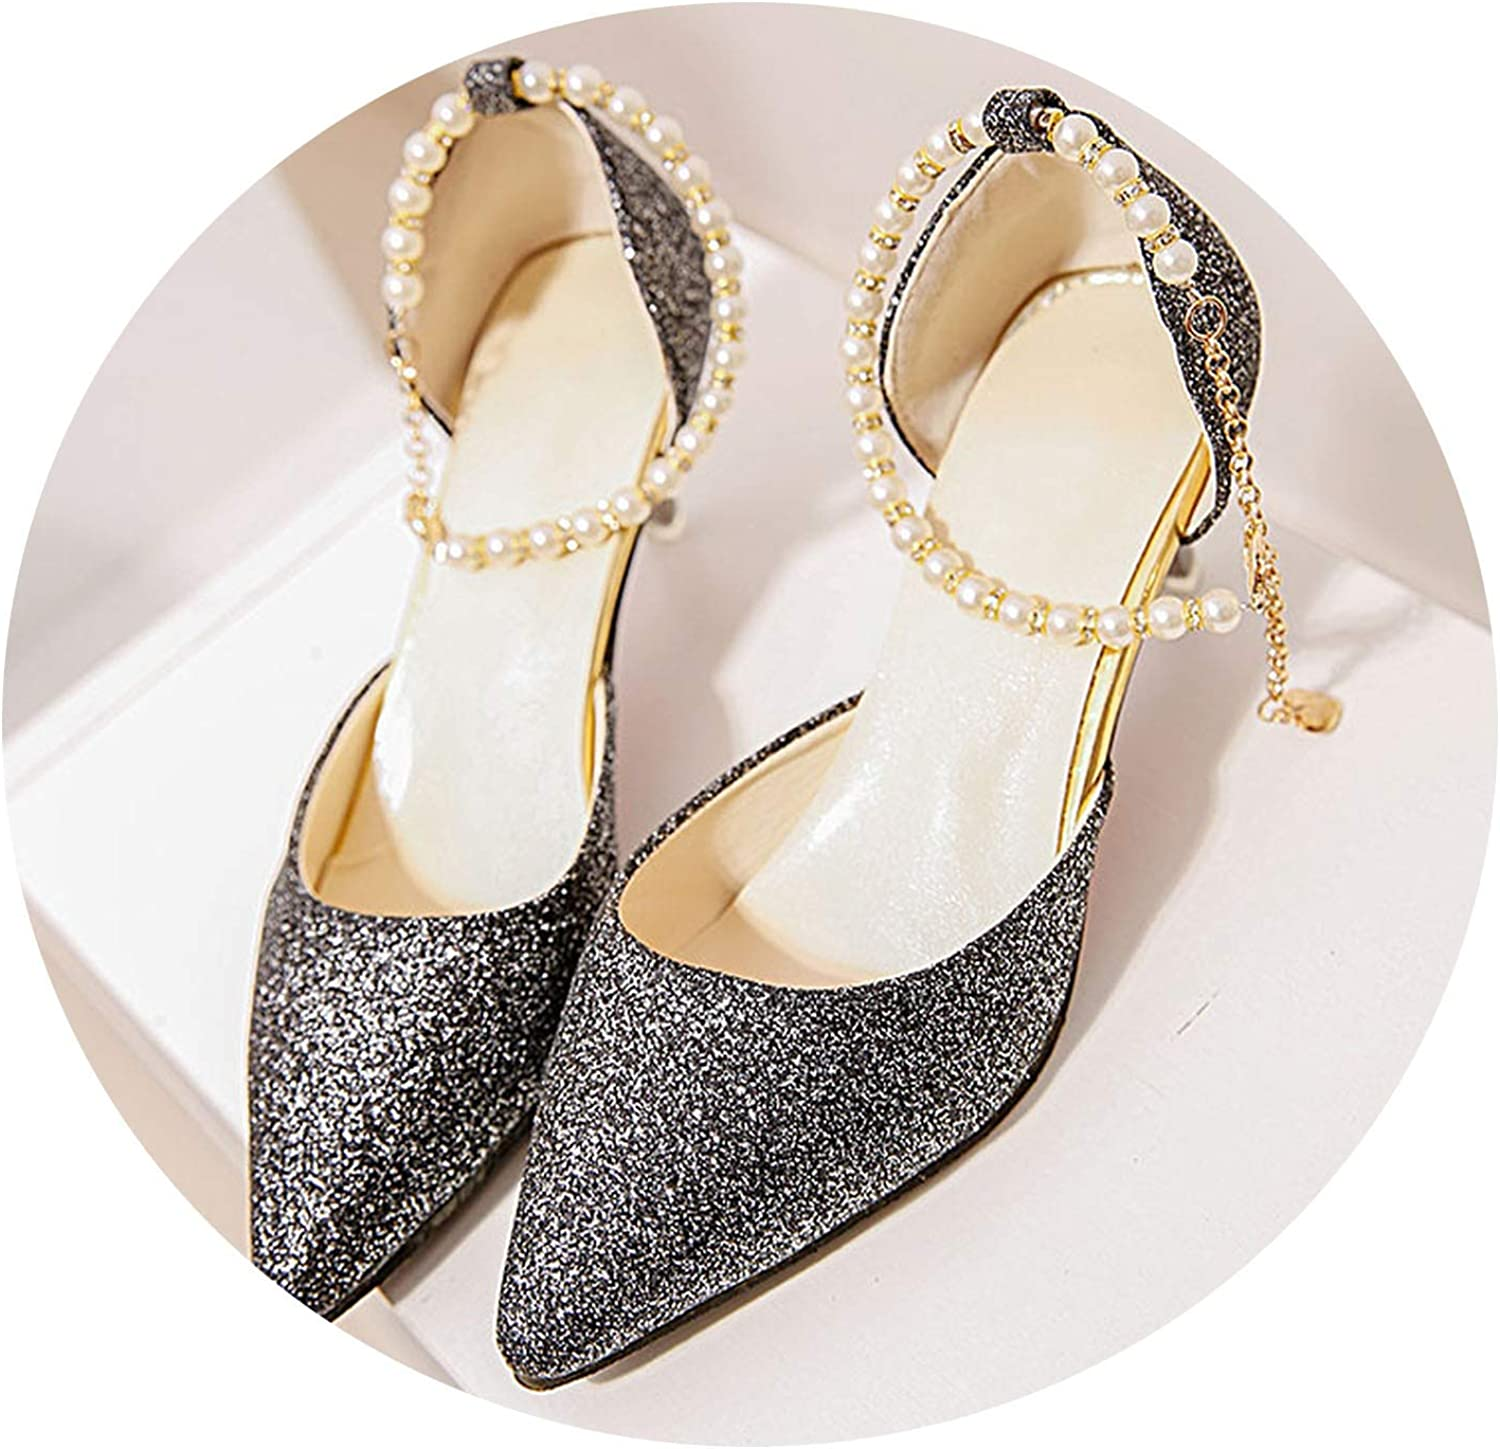 Fragrancety Women Spring Pearl Buckle Strap High Heels Pumps Pointed Toe String Bead Chain shoes Sexy Footwear